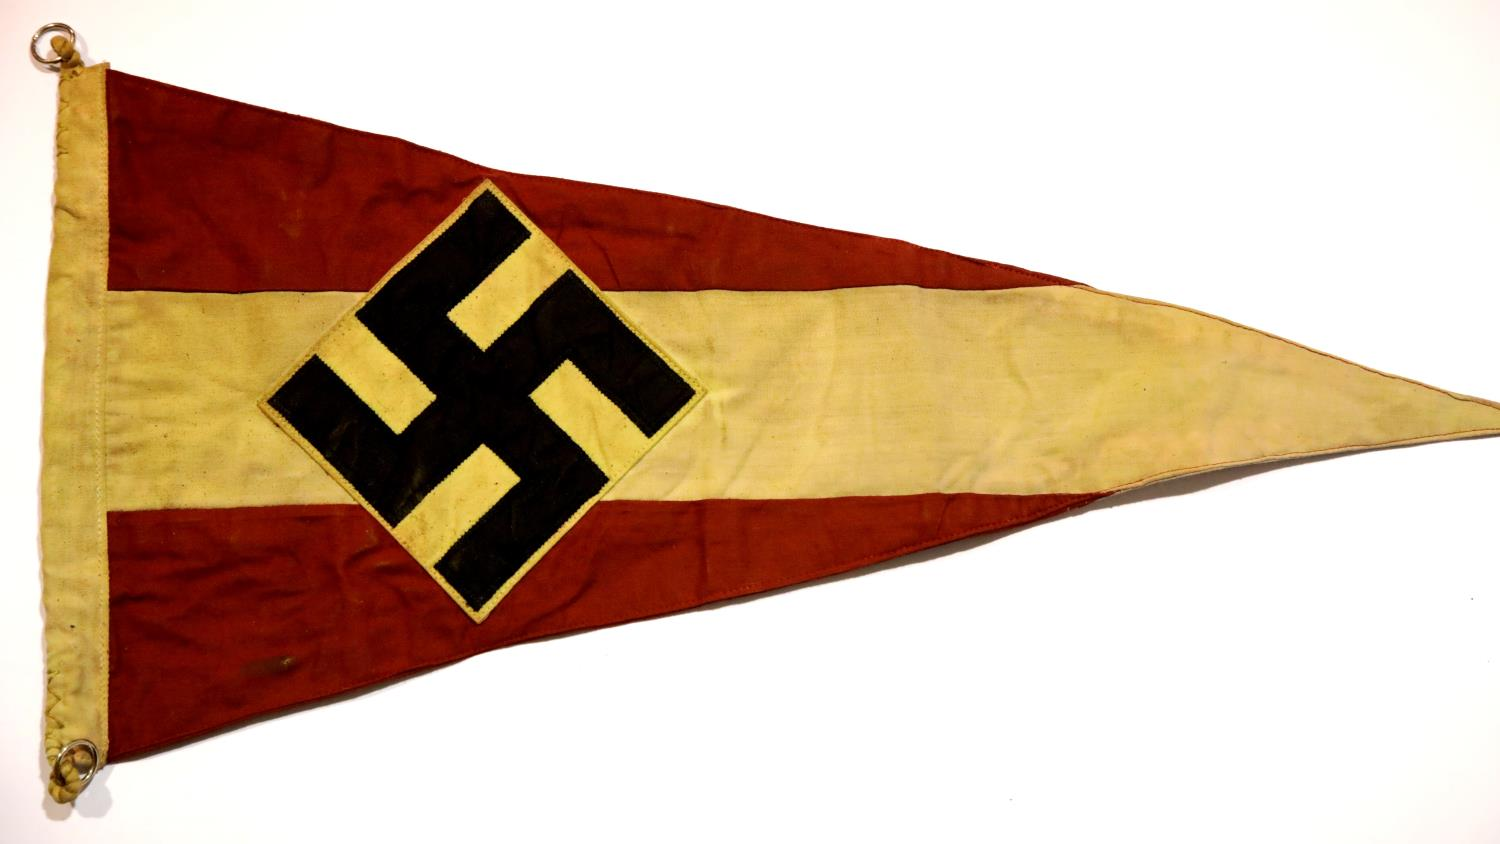 Lot 3015 - German Third Reich type Hitler Youth pennant, L: 56 cm. P&P Group 1 (£14+VAT for the first lot